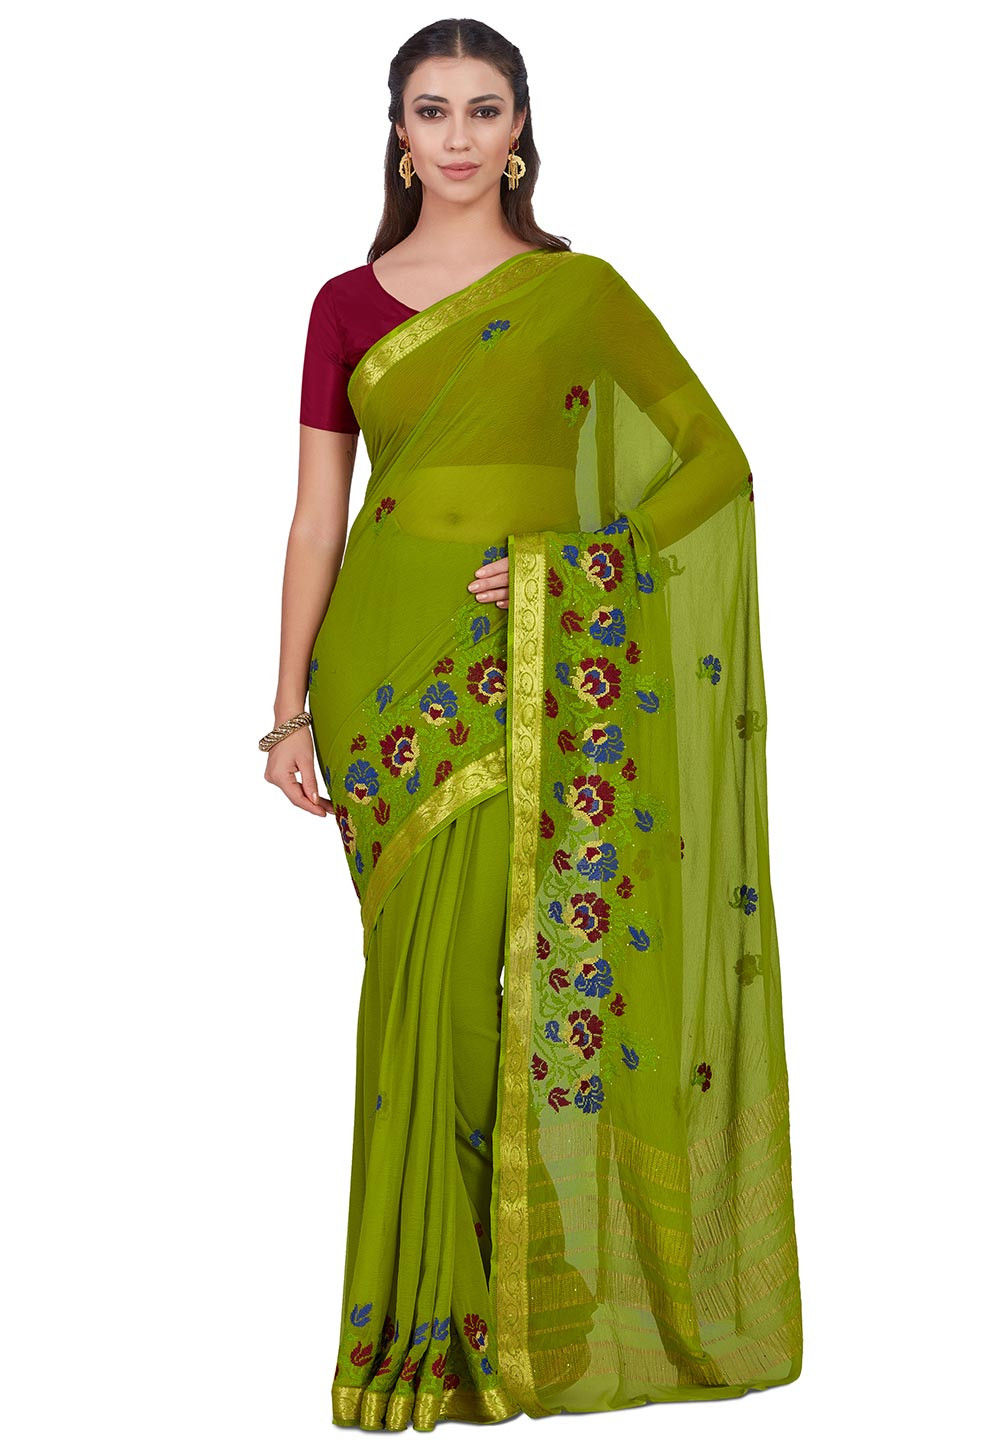 Embroidered Chiffon Saree in Olive Green